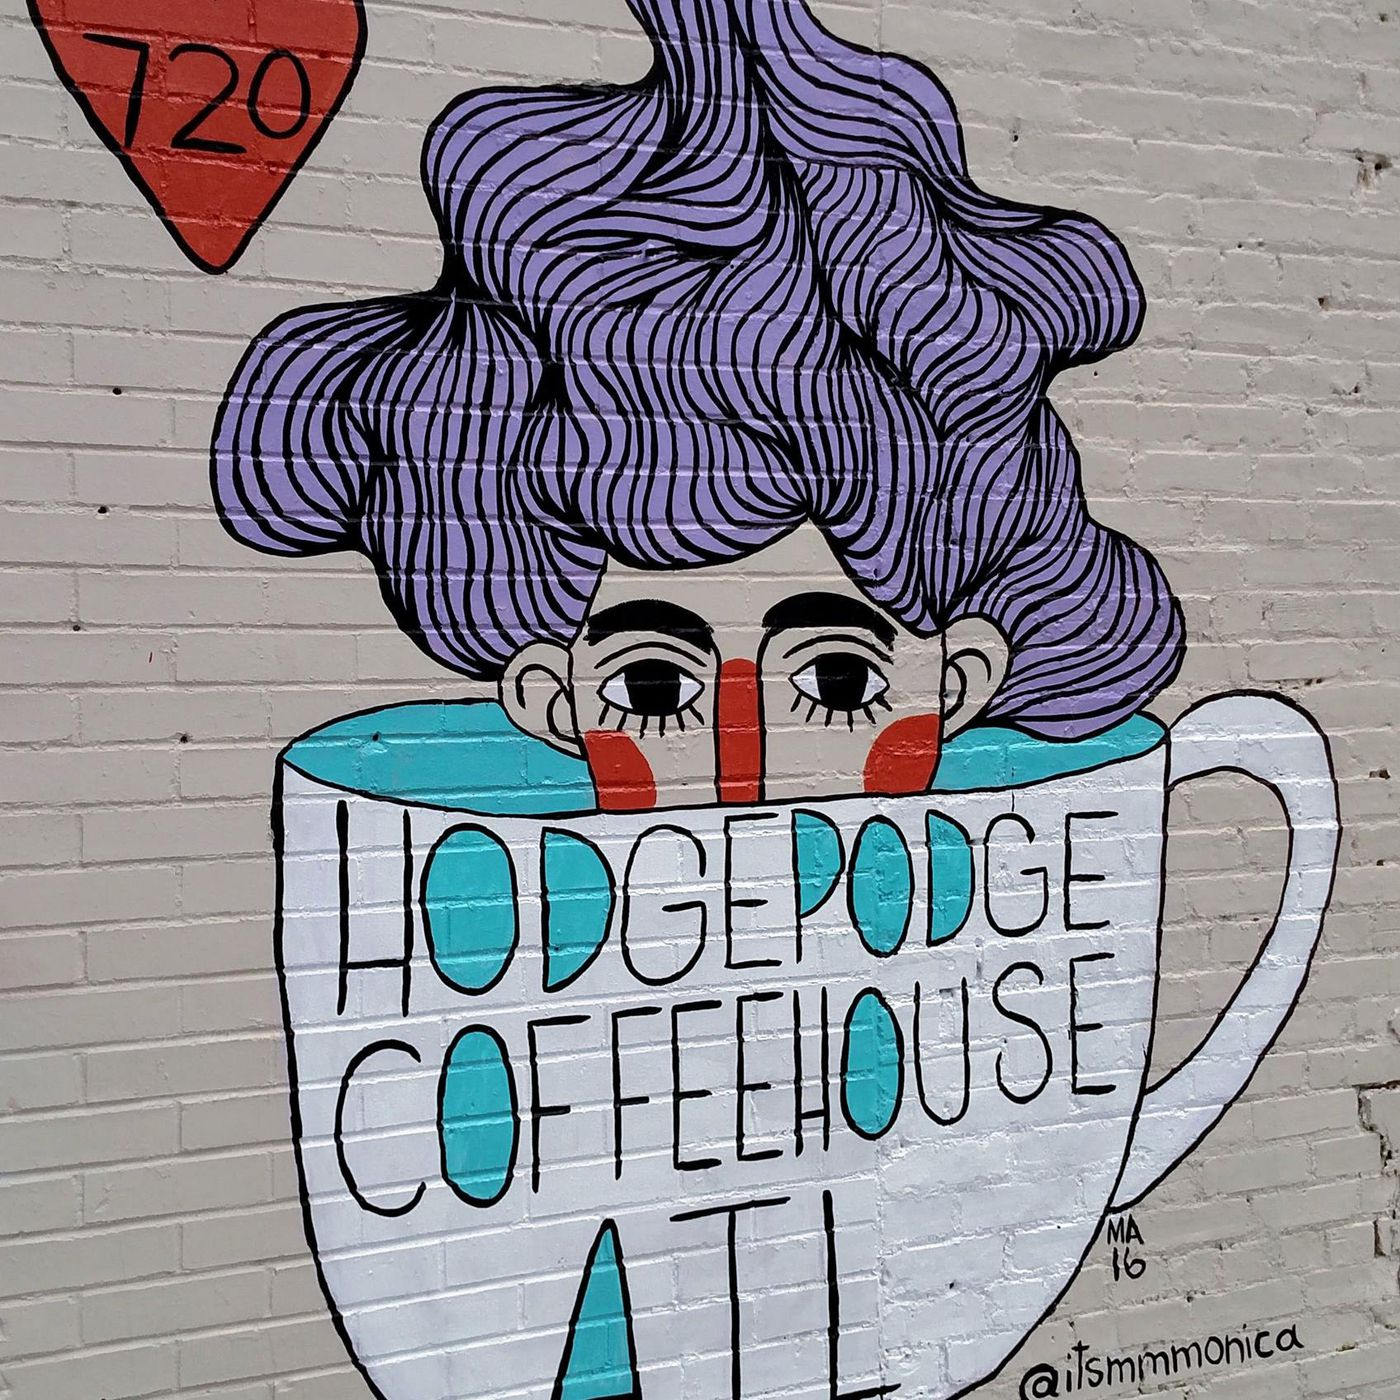 Car Crashes Into Hodgepodge Coffeehouse on Moreland Avenue in East